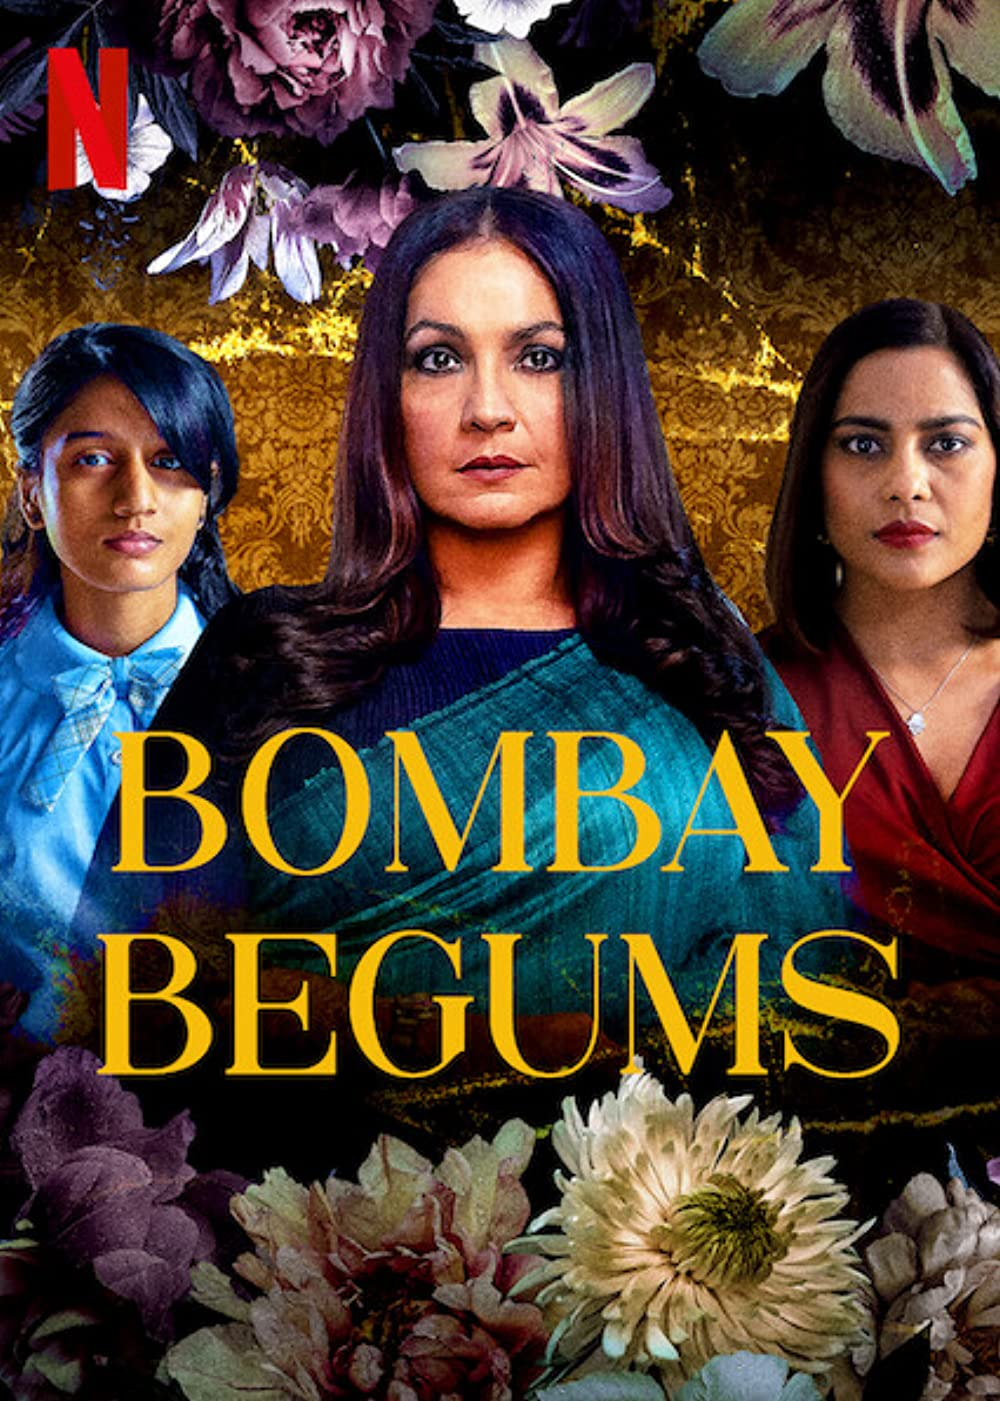 Bombay Begums 2021 S01 Hindi Netflix Original Complete Web Series 720p HDRip 2000MB Download